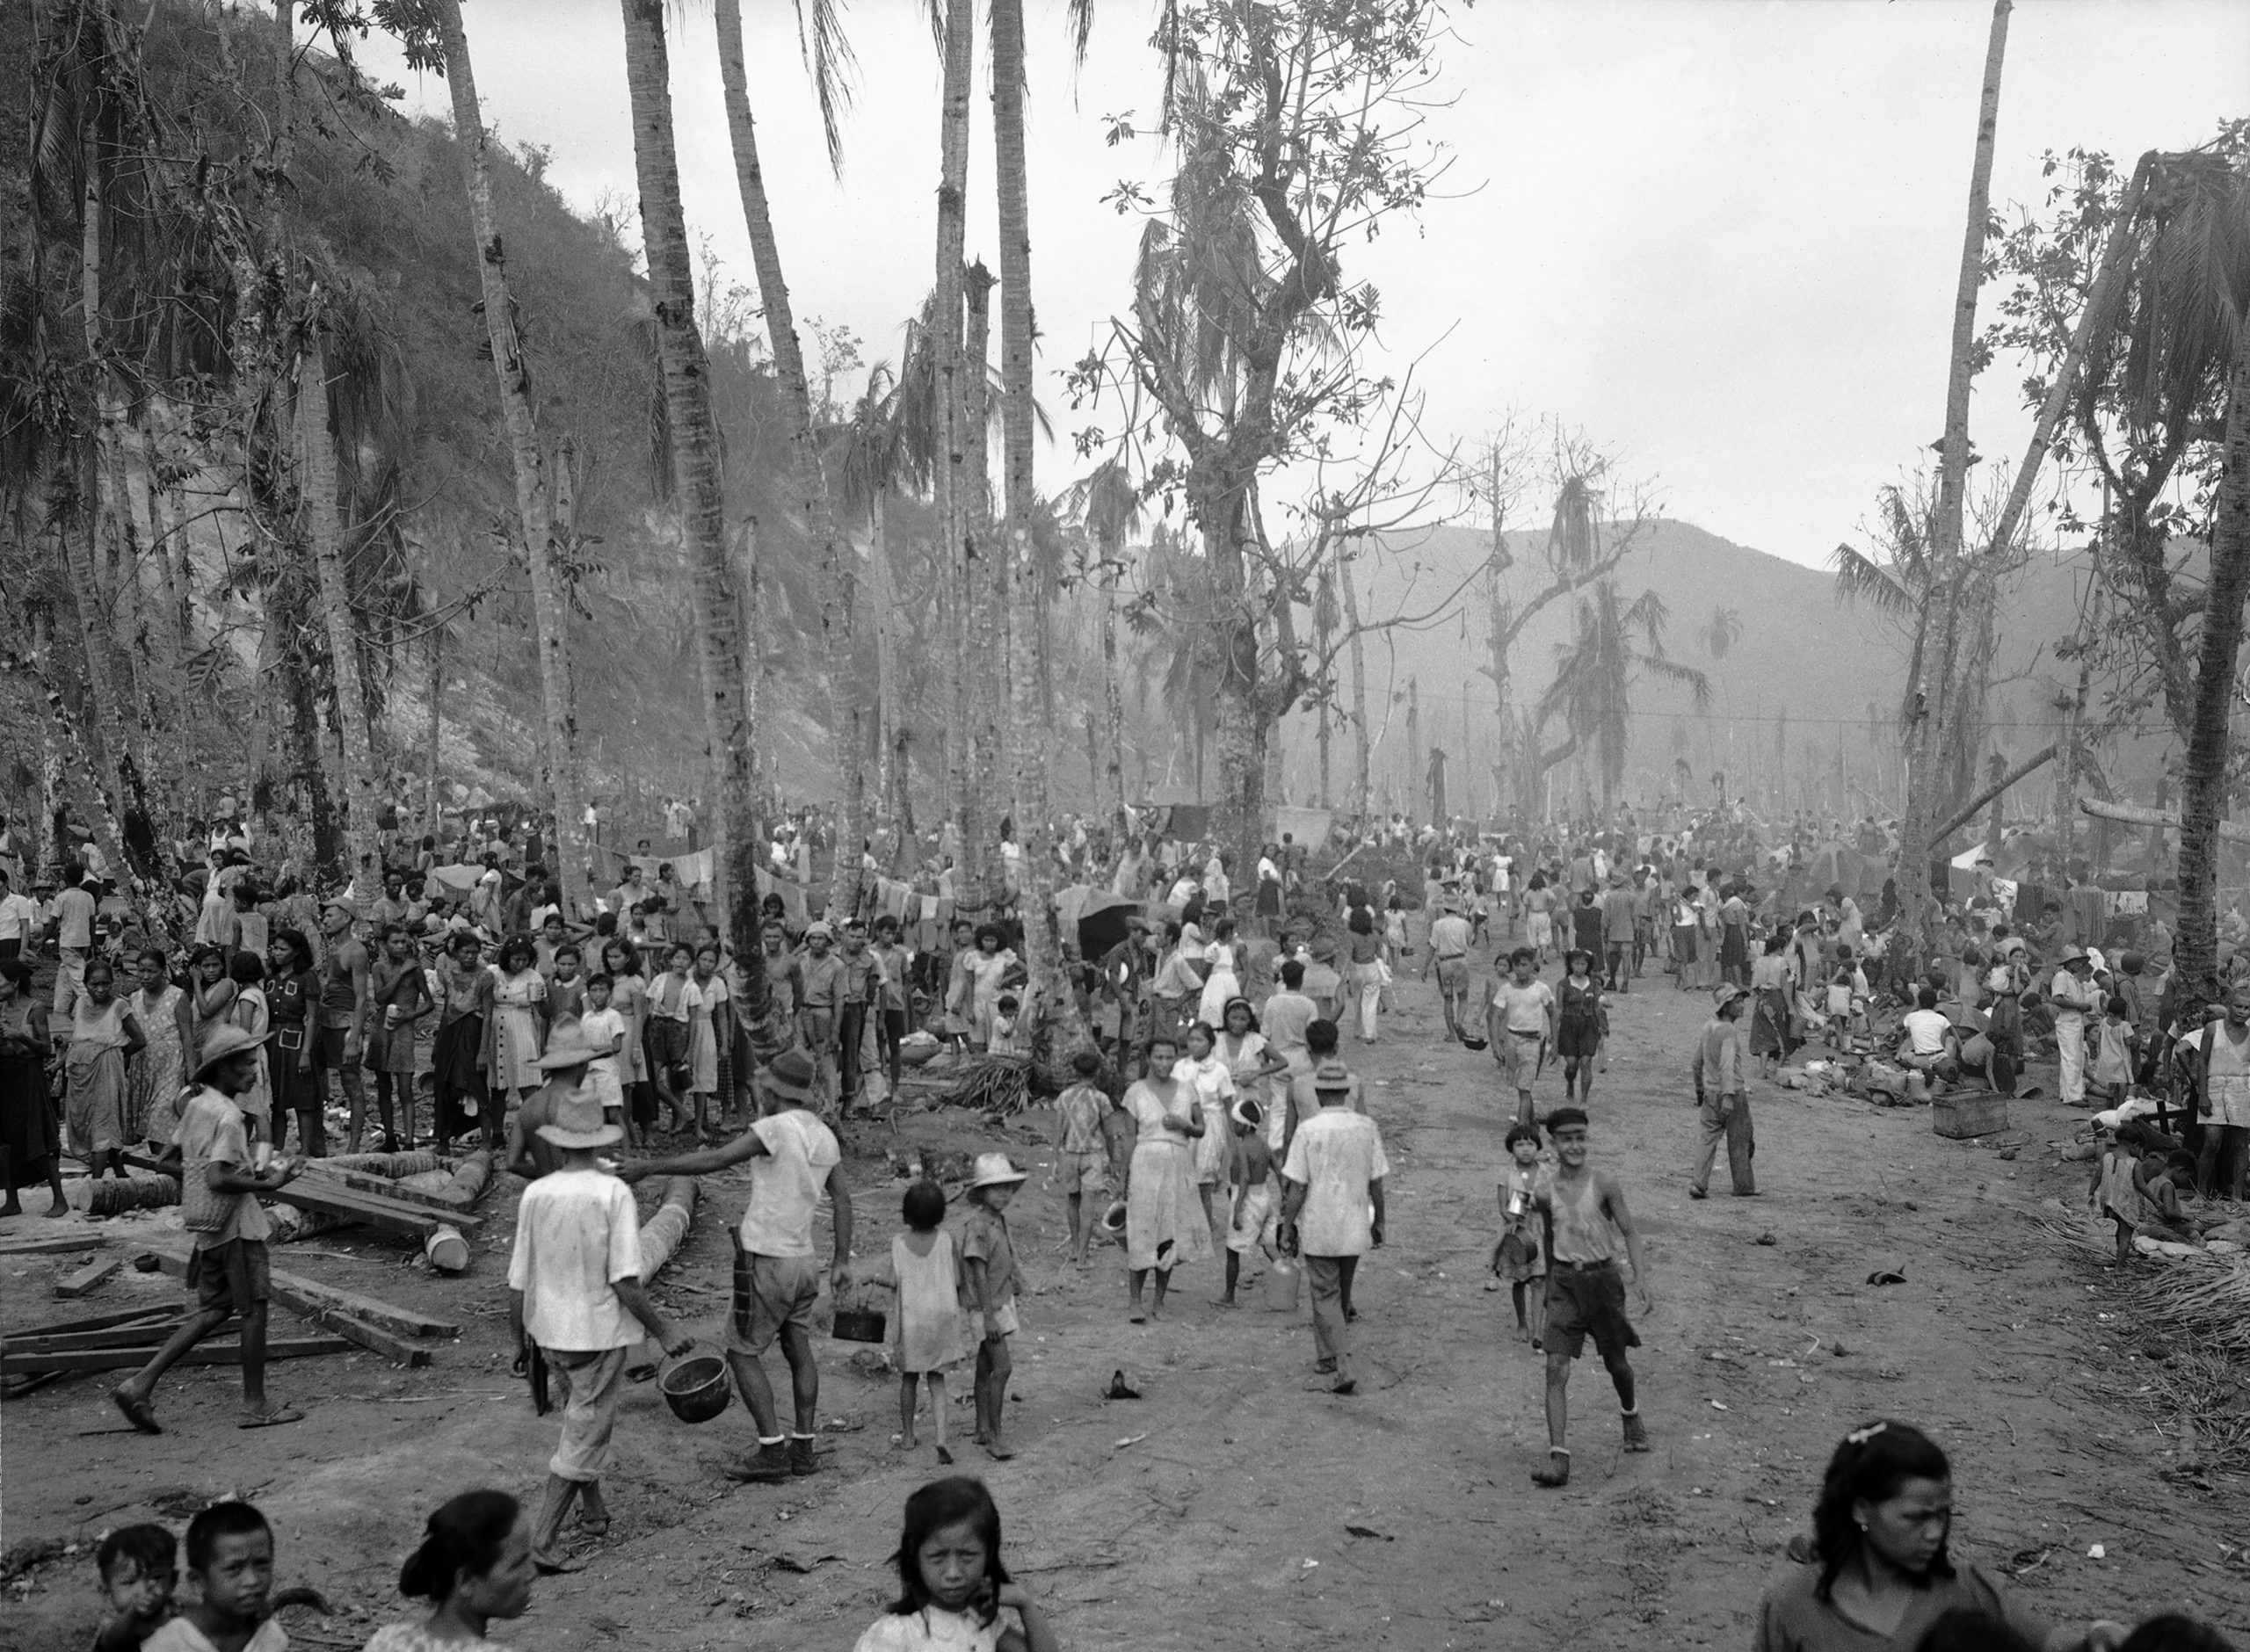 FILE - In this August, 1944 file photo, people of Guam pour out of the hills into the Agana refugee camp. The 1941 Japanese invasion of Guam, which happened on the same December day as the attack on Hawaii's Pearl Harbor, set off years of forced labor, internment, torture, rape and beheadings. More than 75 years later, thousands of people on Guam, a U.S. territory, are expecting to get long-awaited compensation for their suffering at the hands of imperial Japan during World War II. (AP Photo/Joe Rosenthal, File)